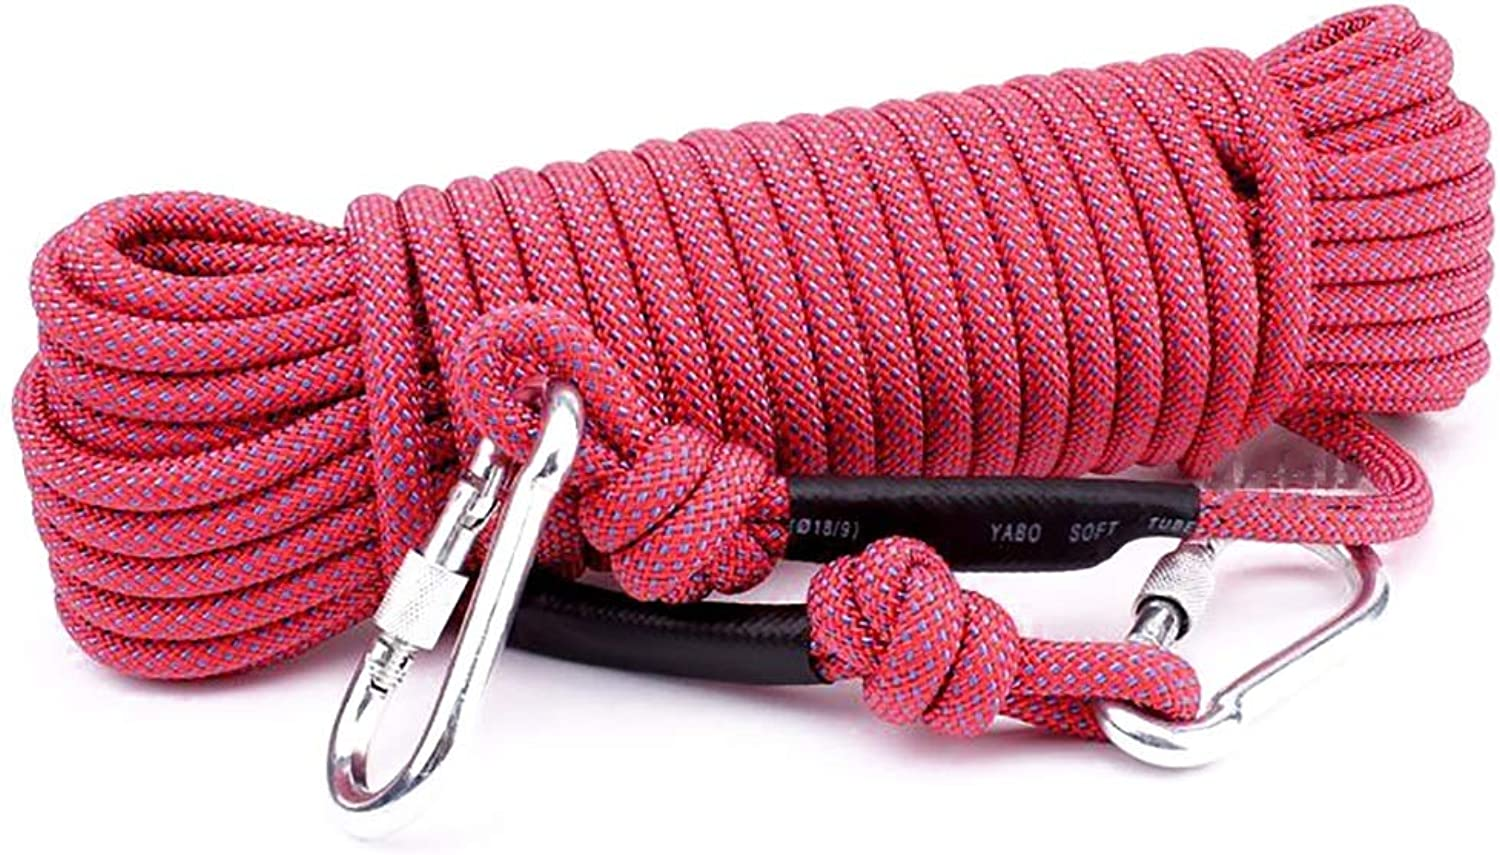 Climbing Rope Static Rope Outdoor Safety Lifeline Diameter 10.5mm Length 10 15 20 25 30 40 50 60m red